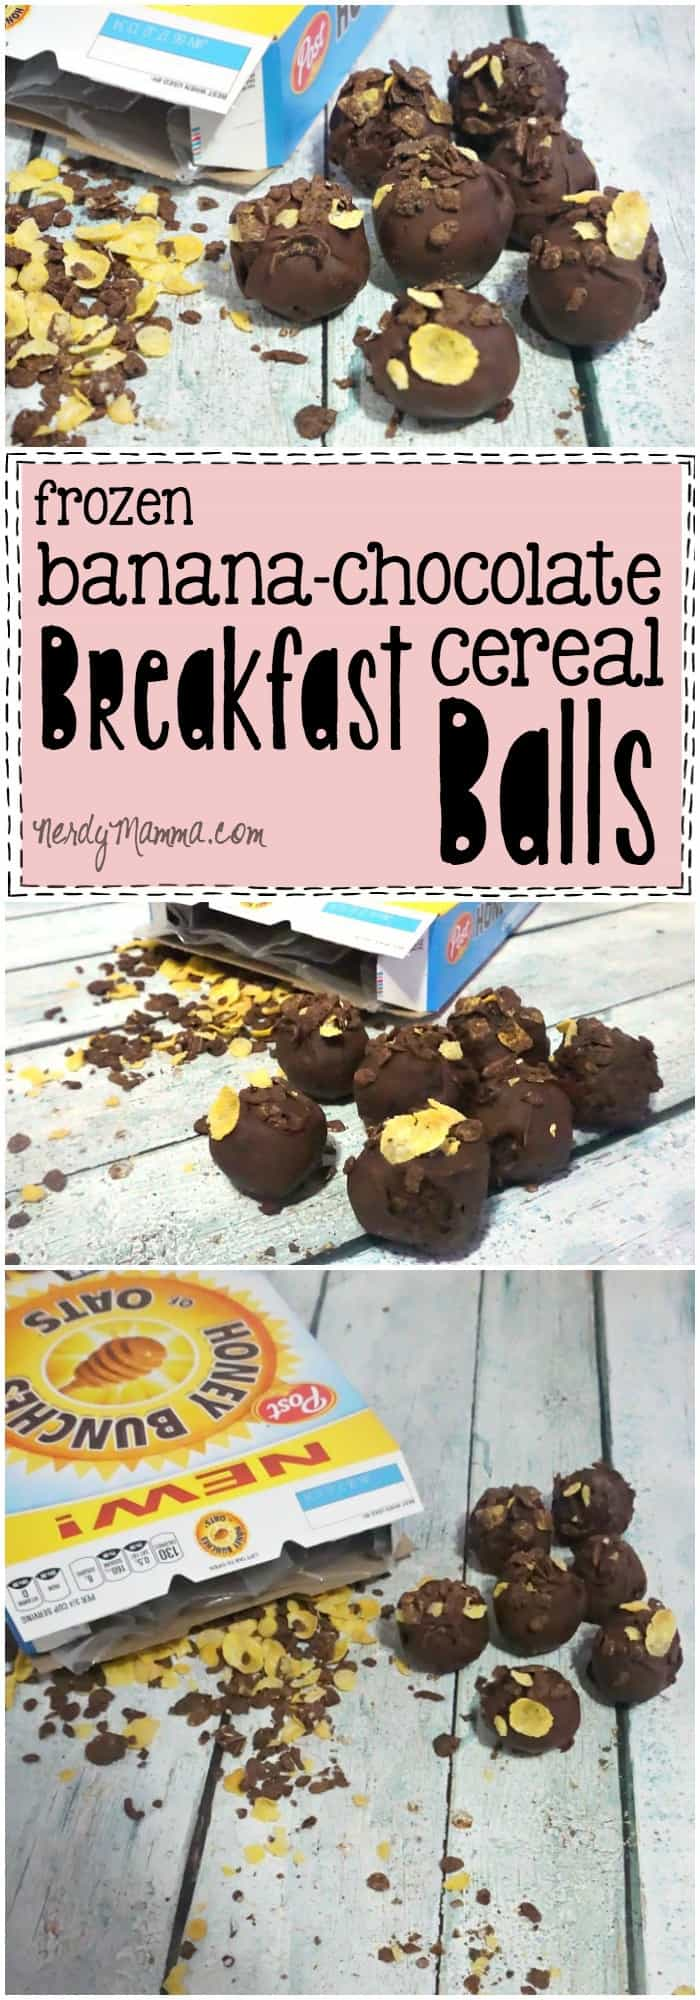 Oh, man, I love these frozen Banana & Chocolate Breakfast Balls. They're so yummy-looking and just AWESOME.